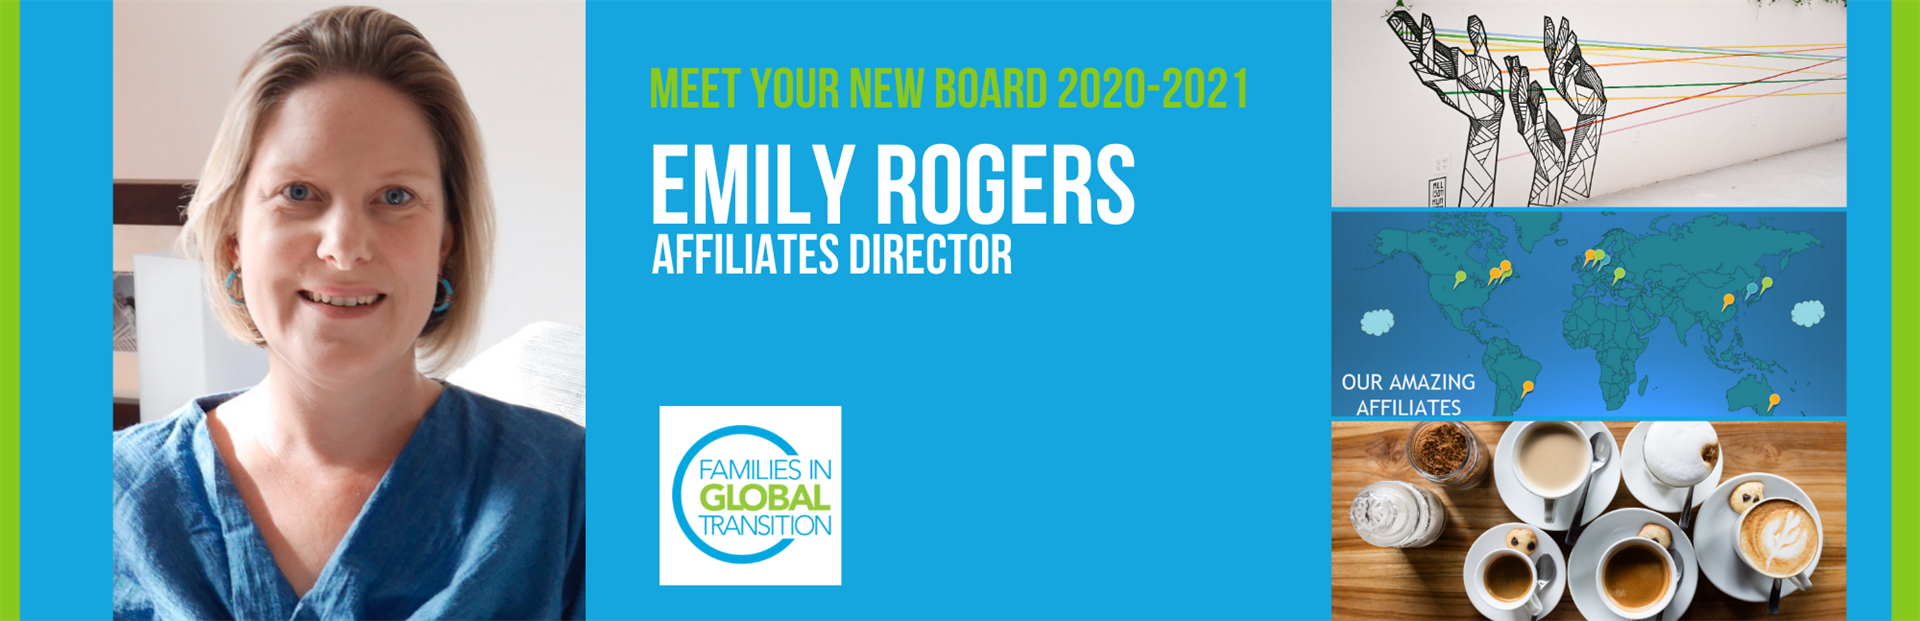 blog title: meet your new board 2020-2021 Emily Rogers, Affiliates Director